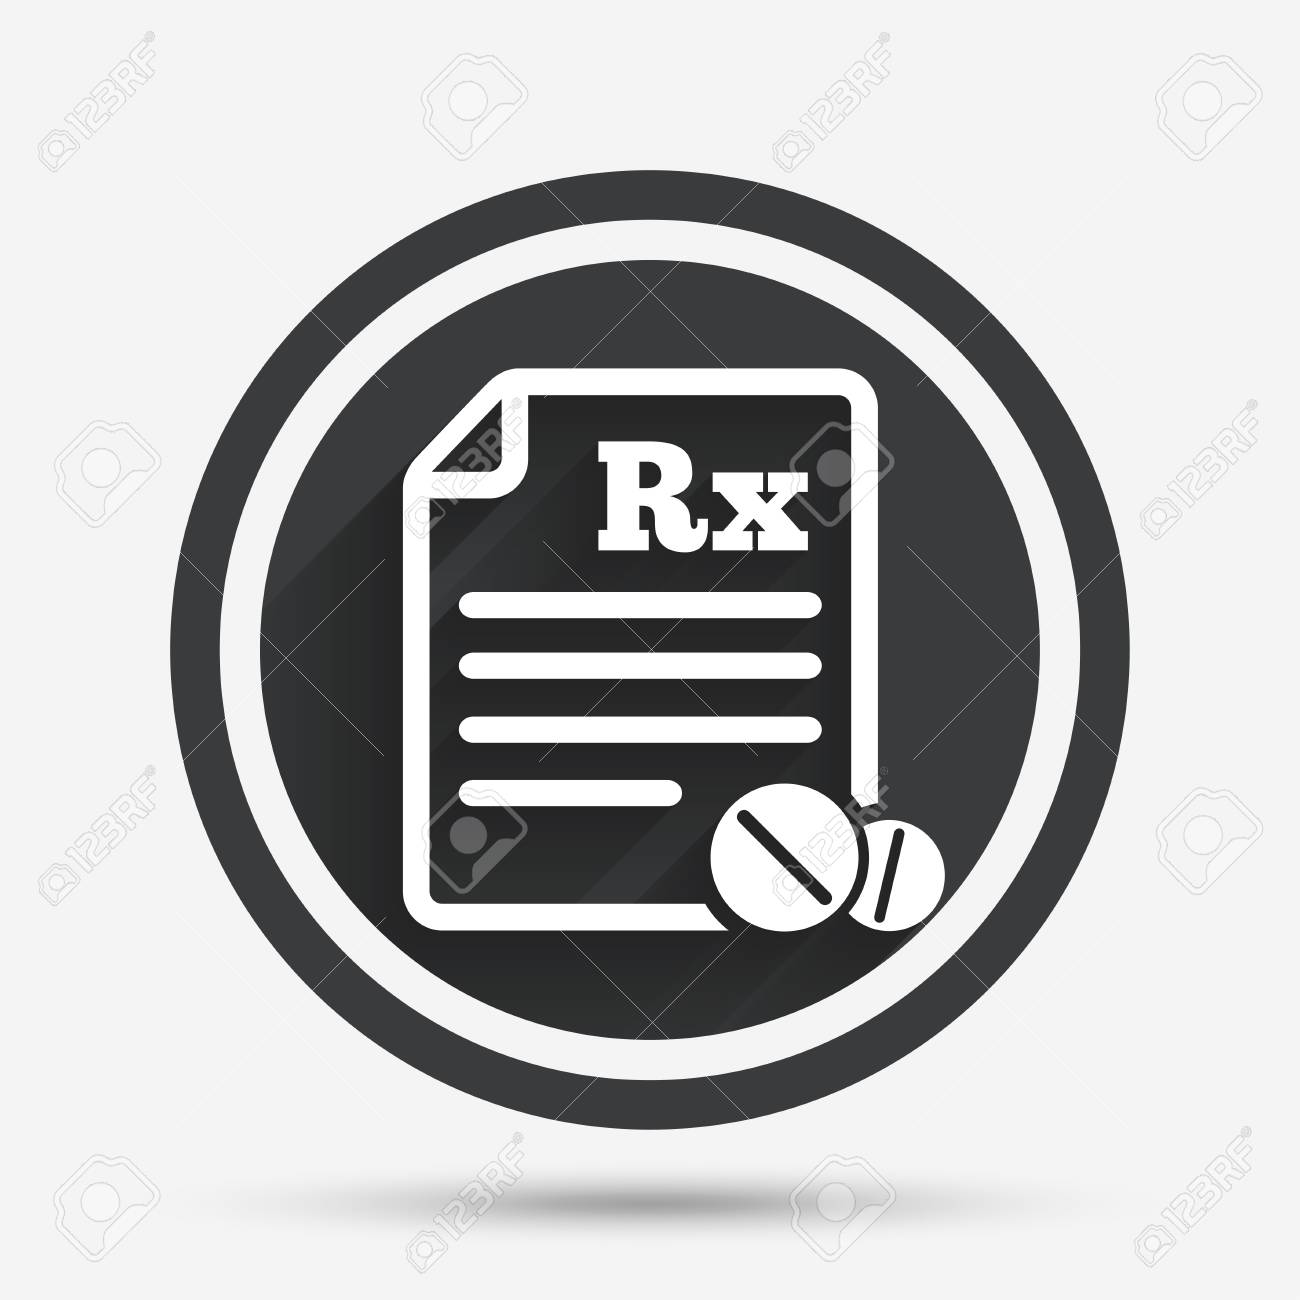 Medical prescription rx sign icon pharmacy or medicine symbol medical prescription rx sign icon pharmacy or medicine symbol with round tablets circle buycottarizona